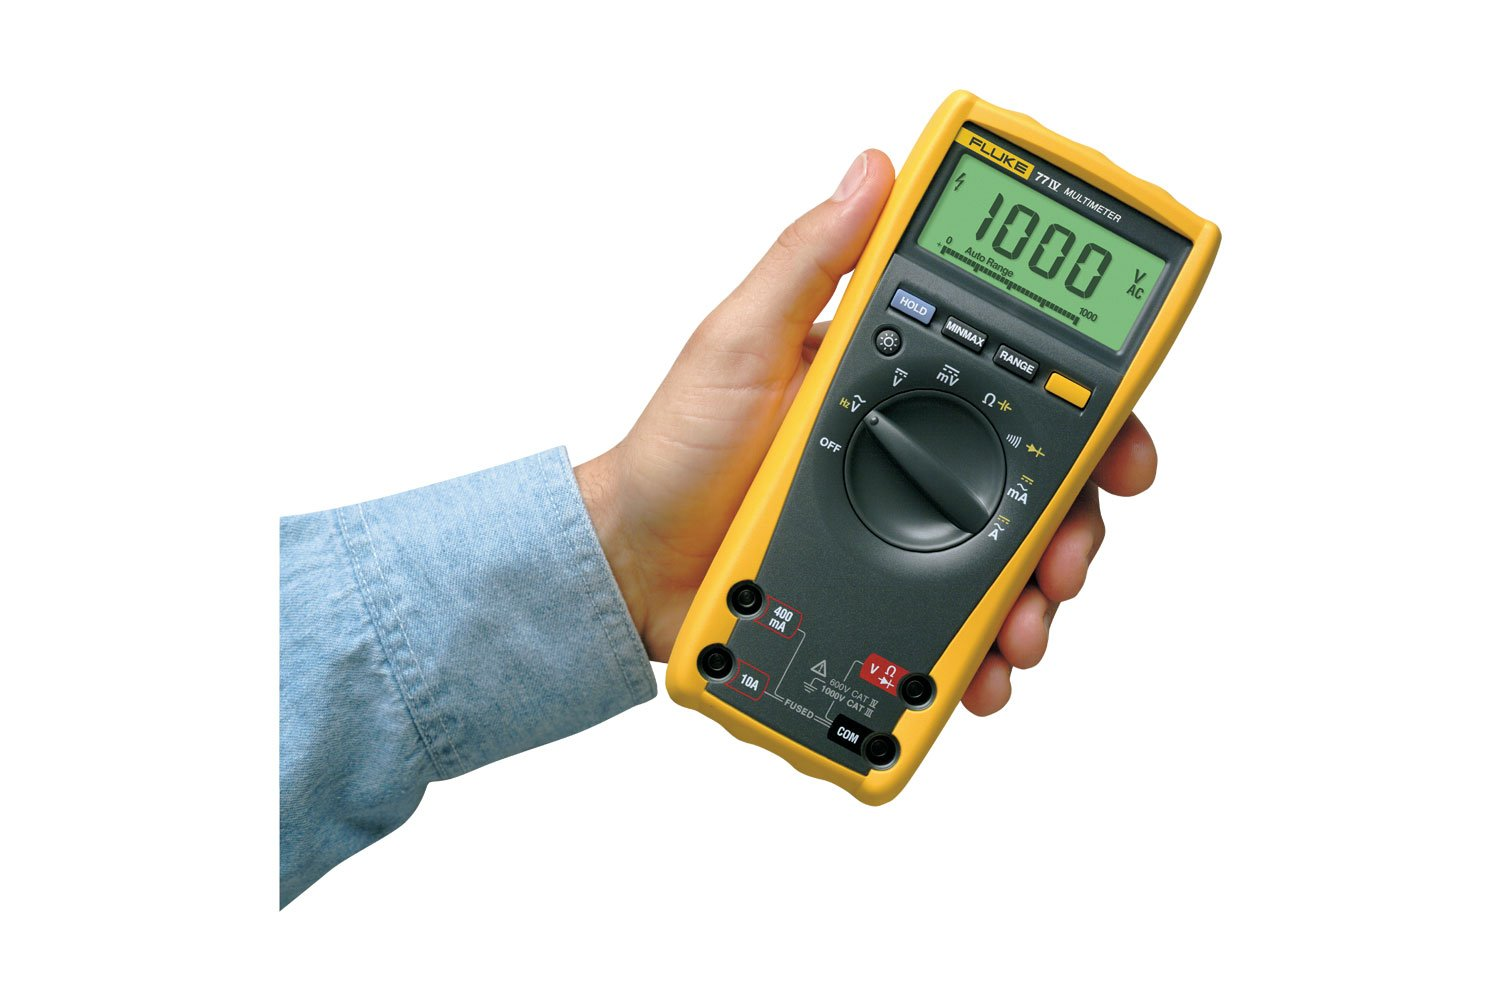 fluke 77 iv digital multimeter fluke rh fluke com fluke 23 multimeter manual fluke 23 service manual